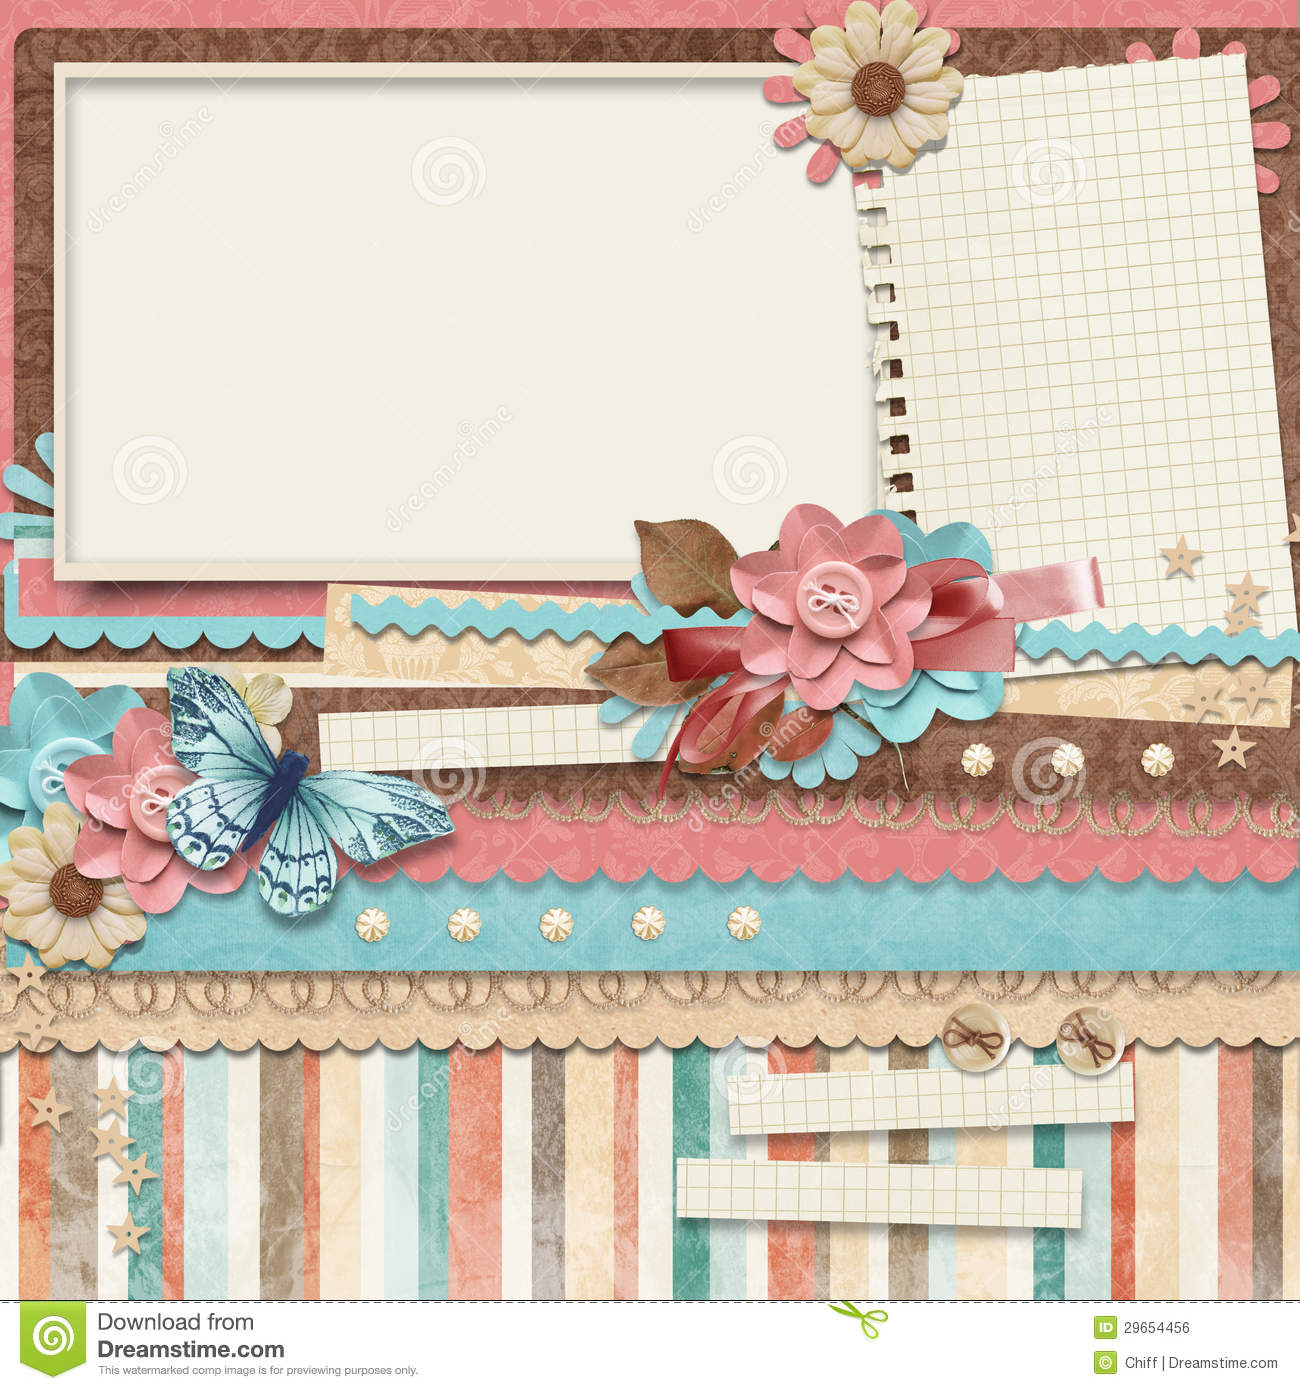 Free Scrapbook Templates | Retro Family Album 365 Project Scrapbooking Templates Stock